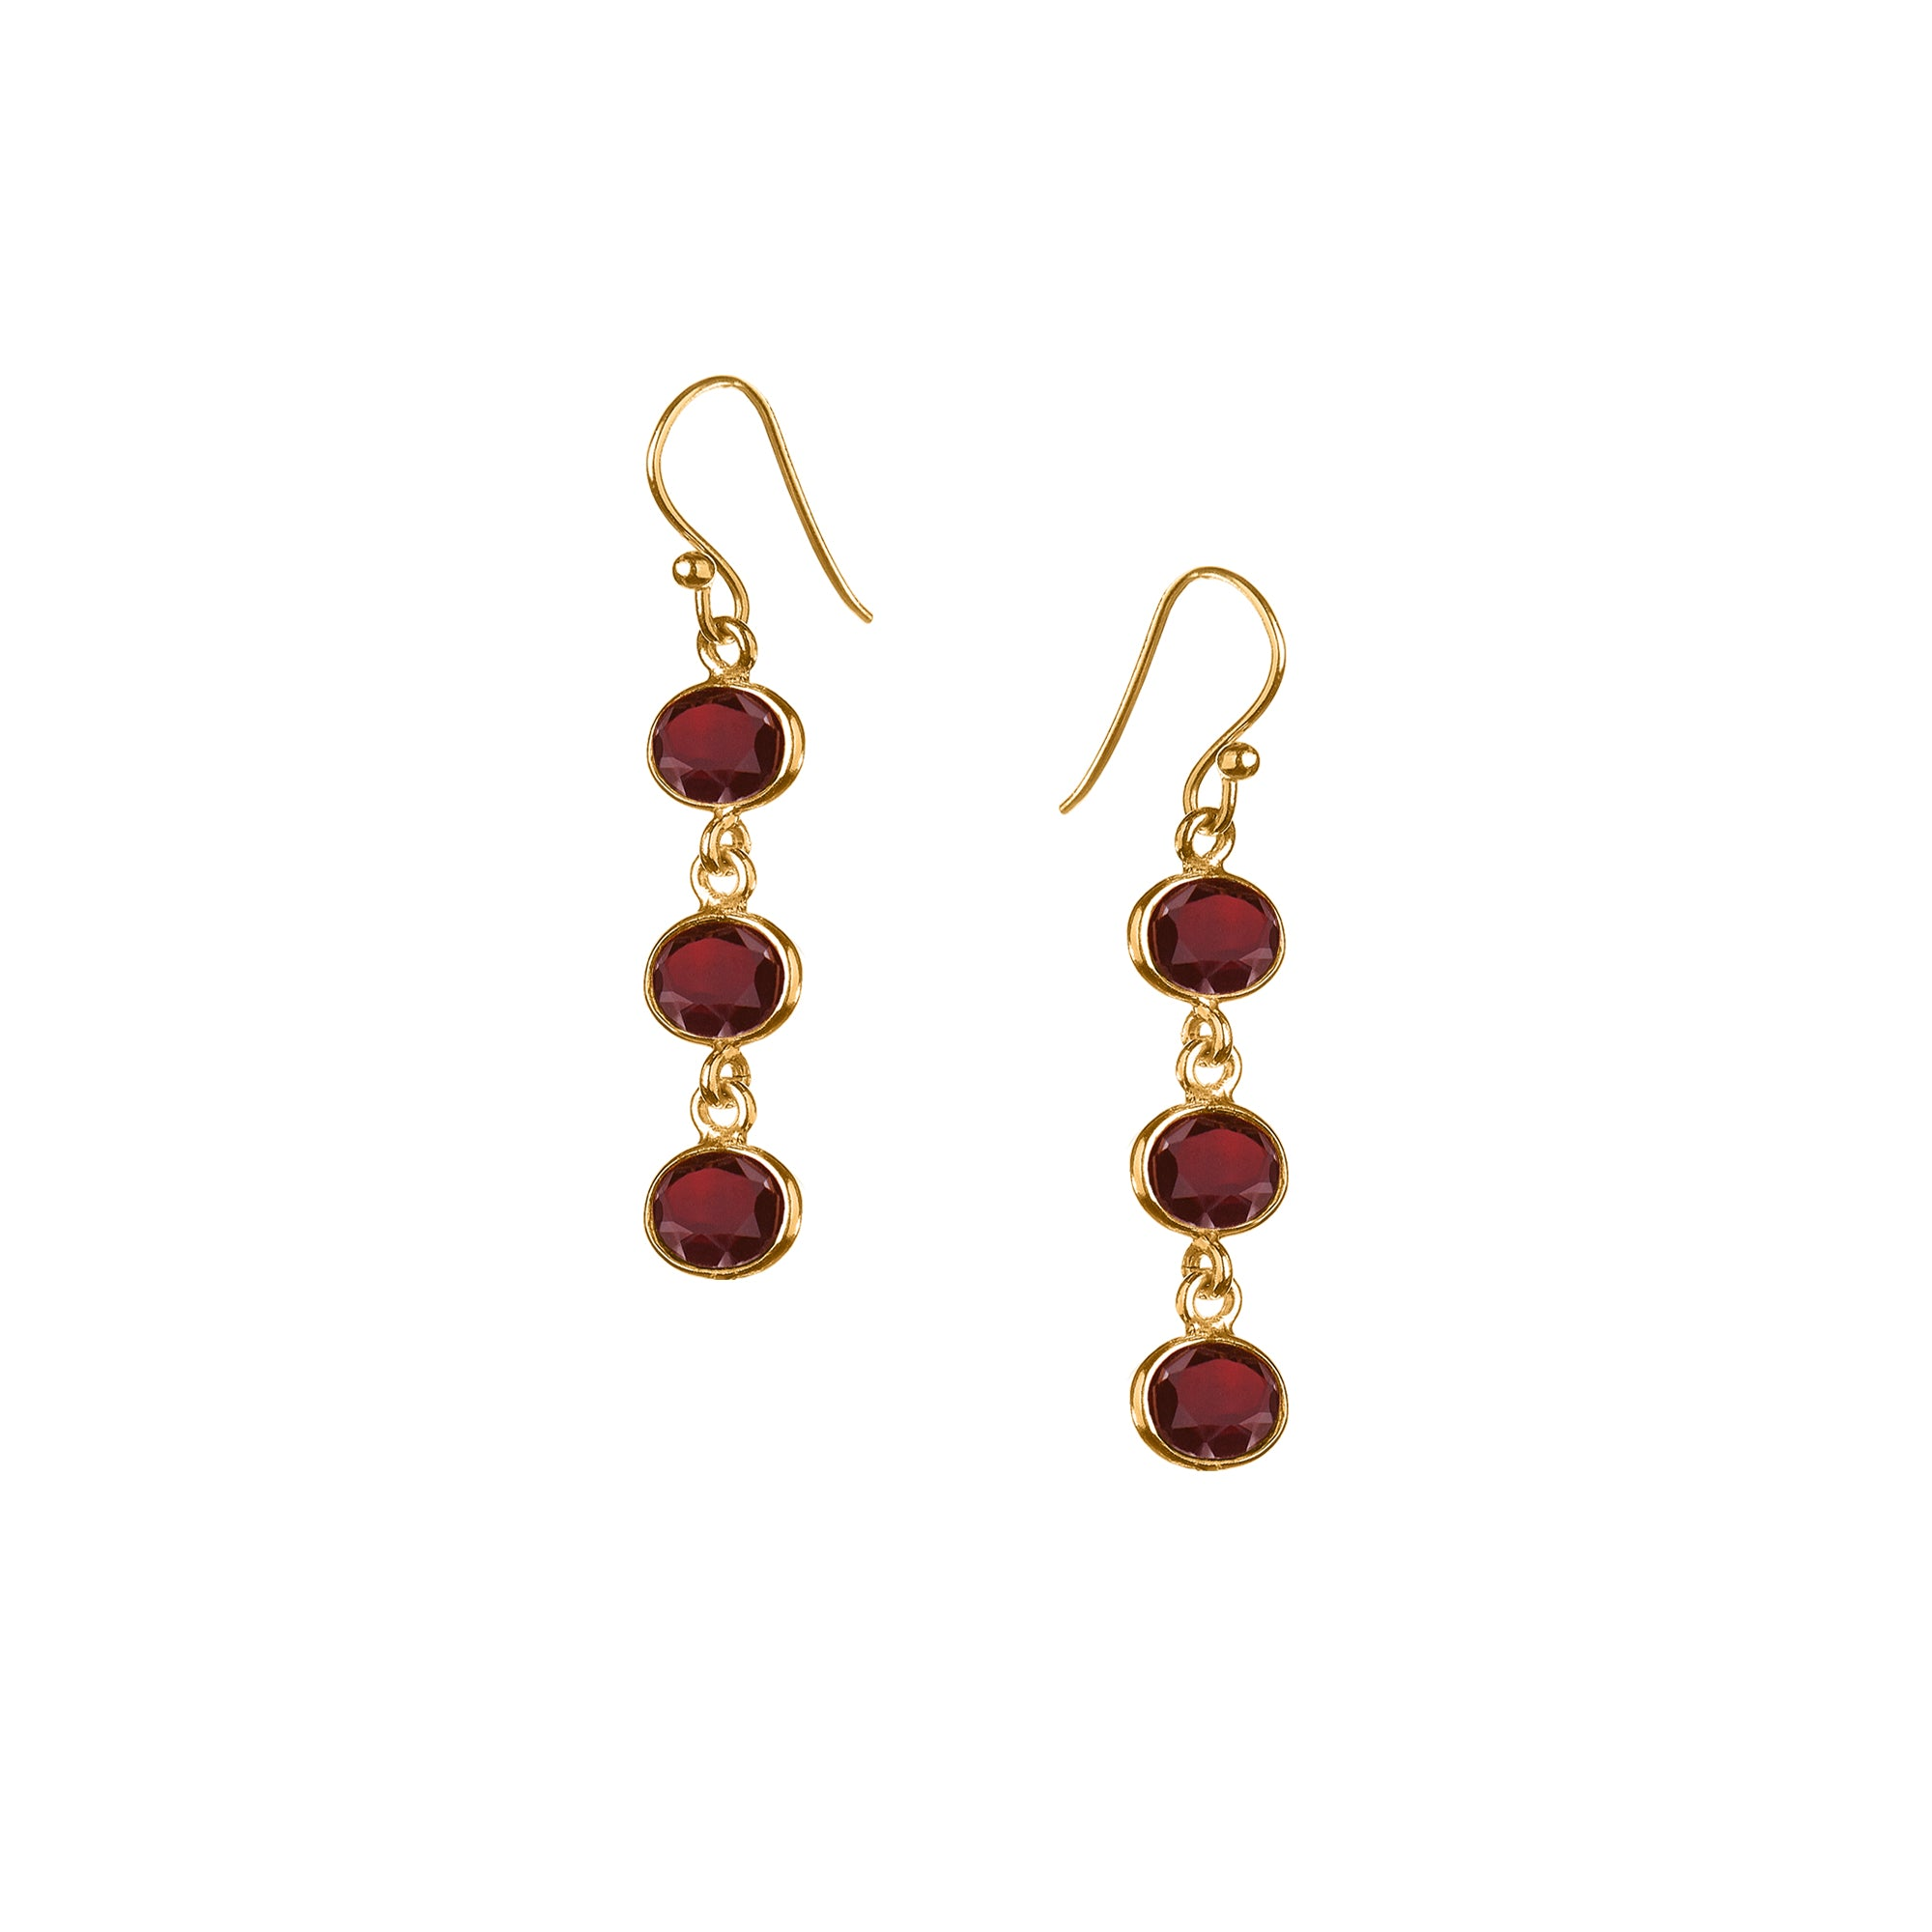 Trellis Earring in Gold with Garnet